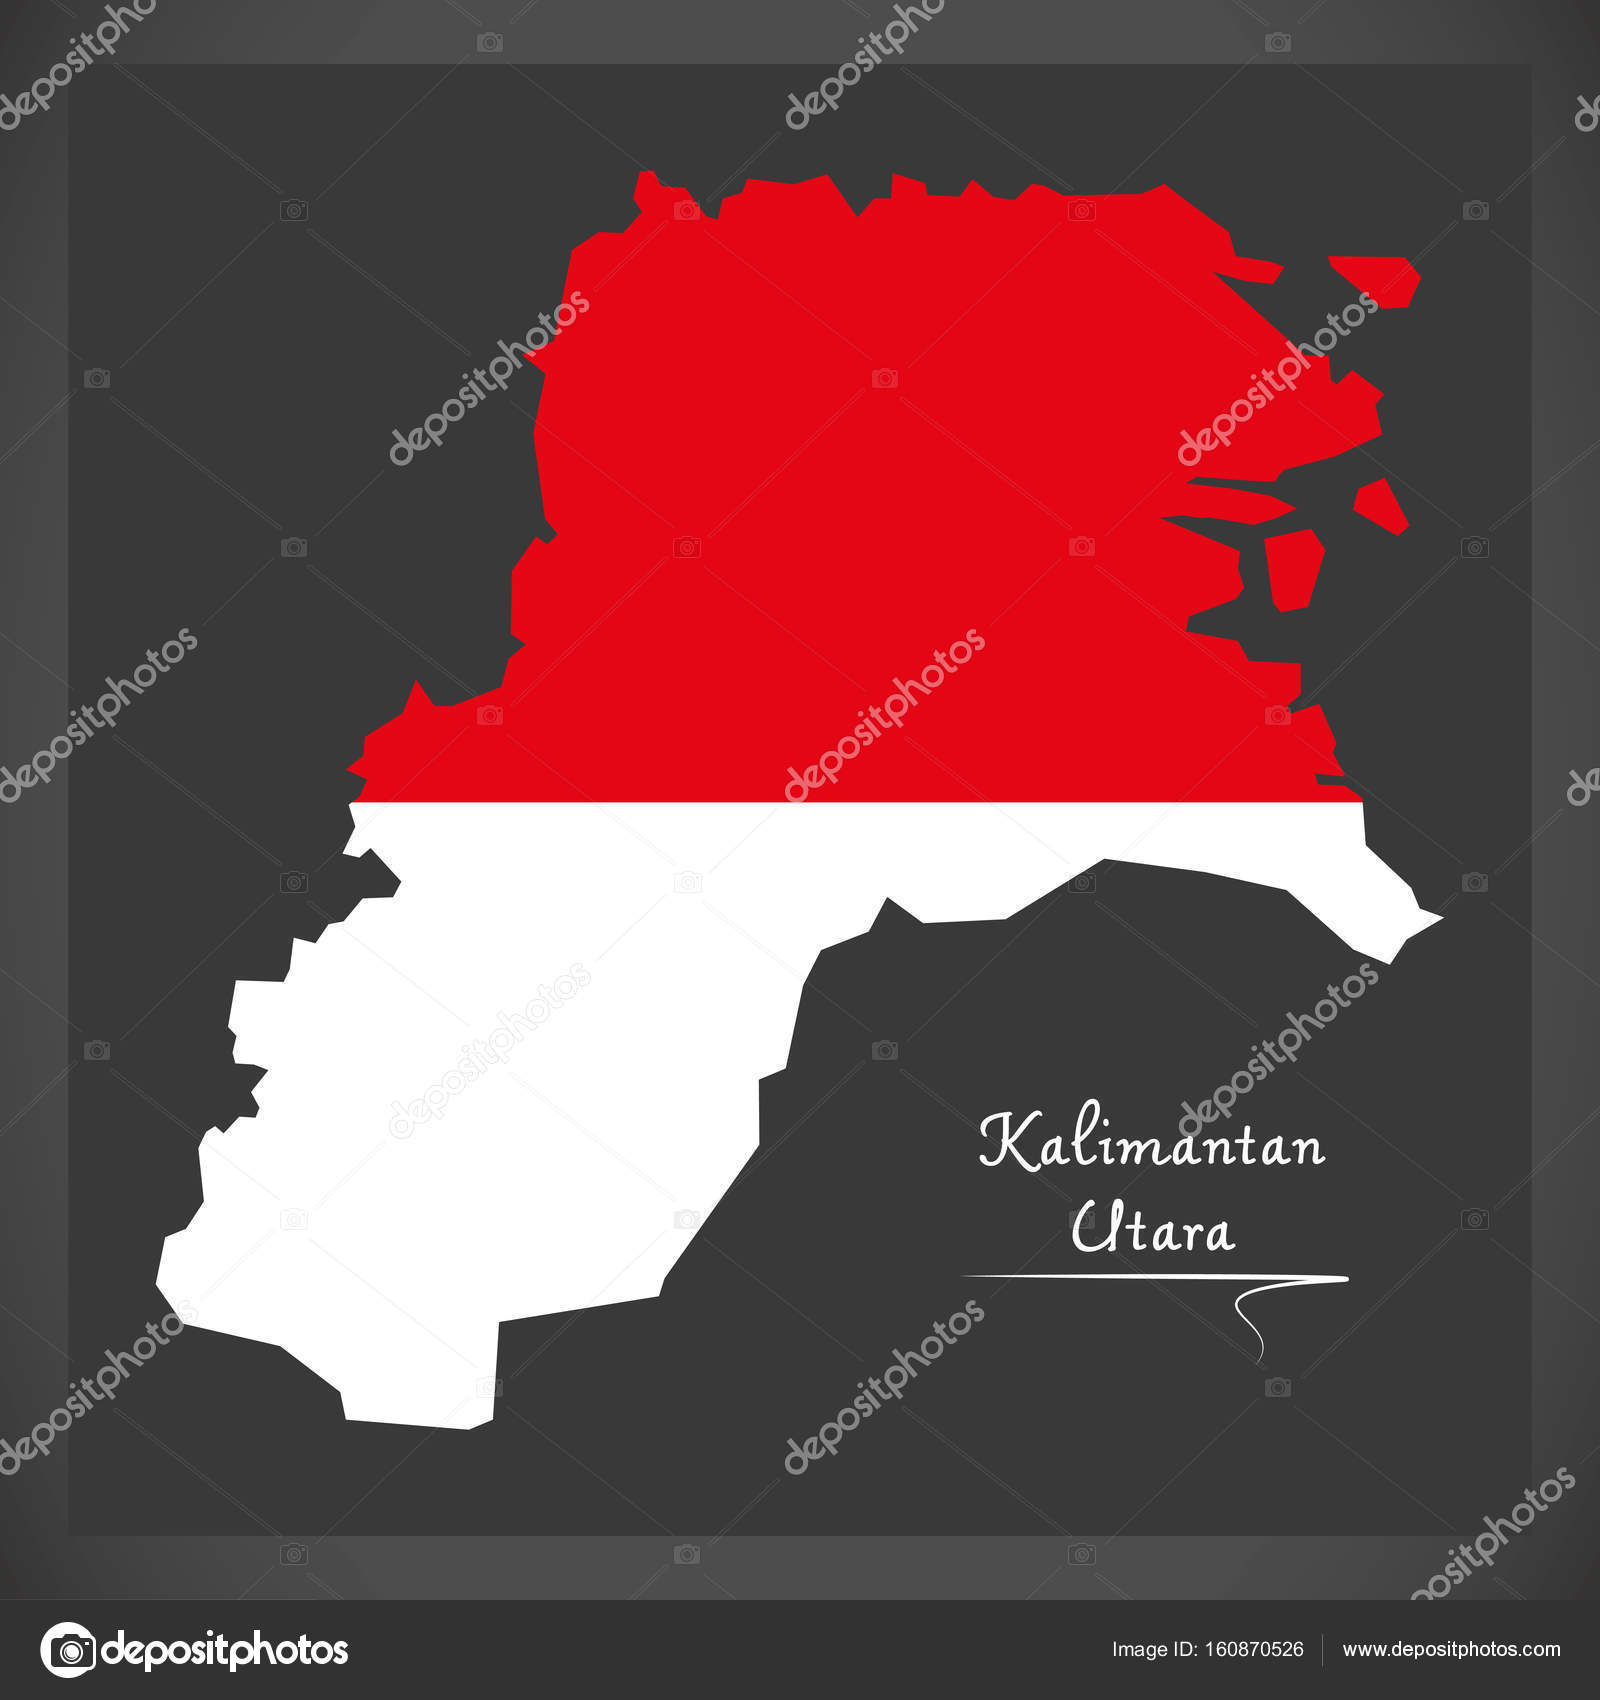 Kalimantan Utara Indonesia Map With Indonesian National Flag Ill - Ill map